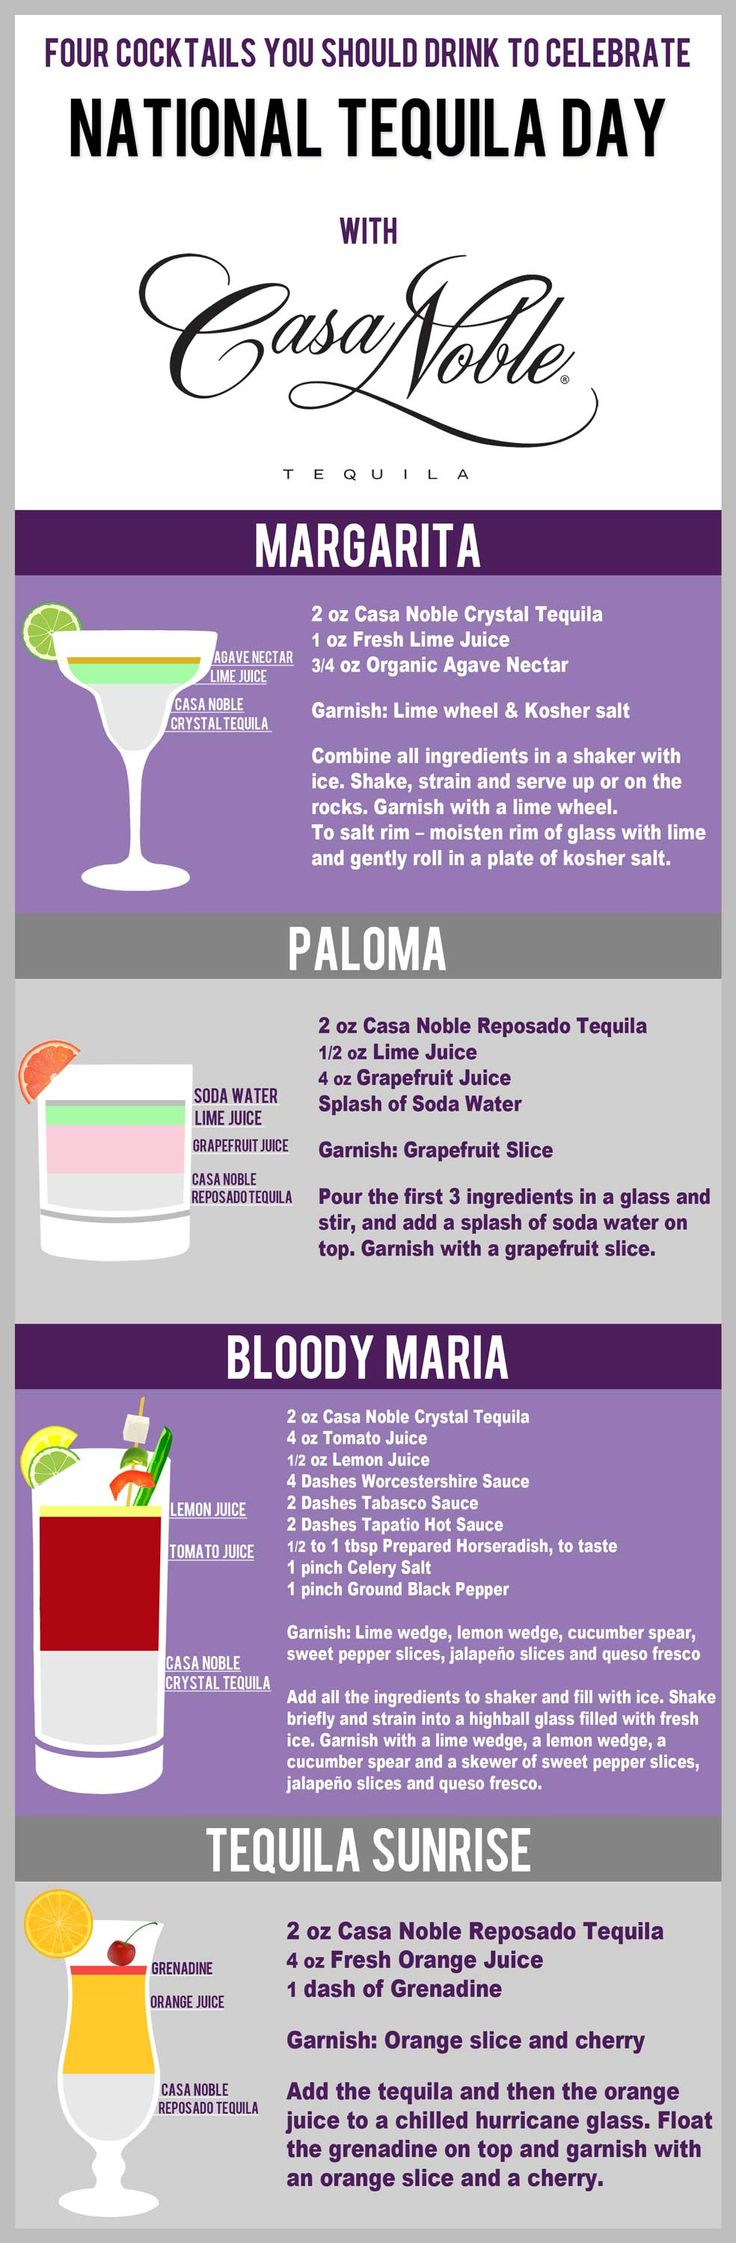 Four Cocktails You Should Drink To Celebrate National Tequila Day! #TequilaDay #July24